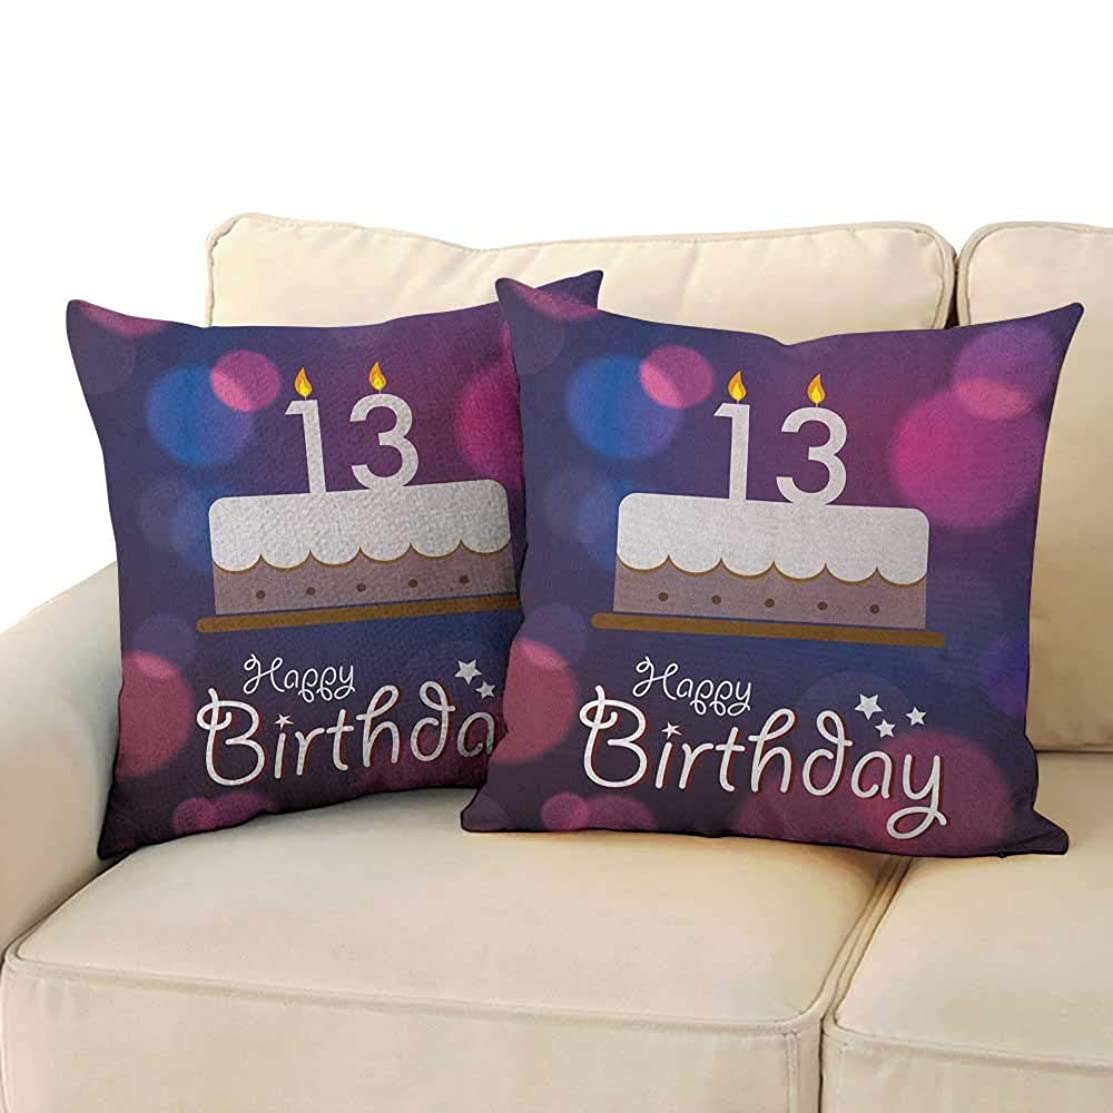 13th Birthday,Square Body Pillowcase Hand Drawn Style Party Cake with Number Candles on Abstract Backdrop 24